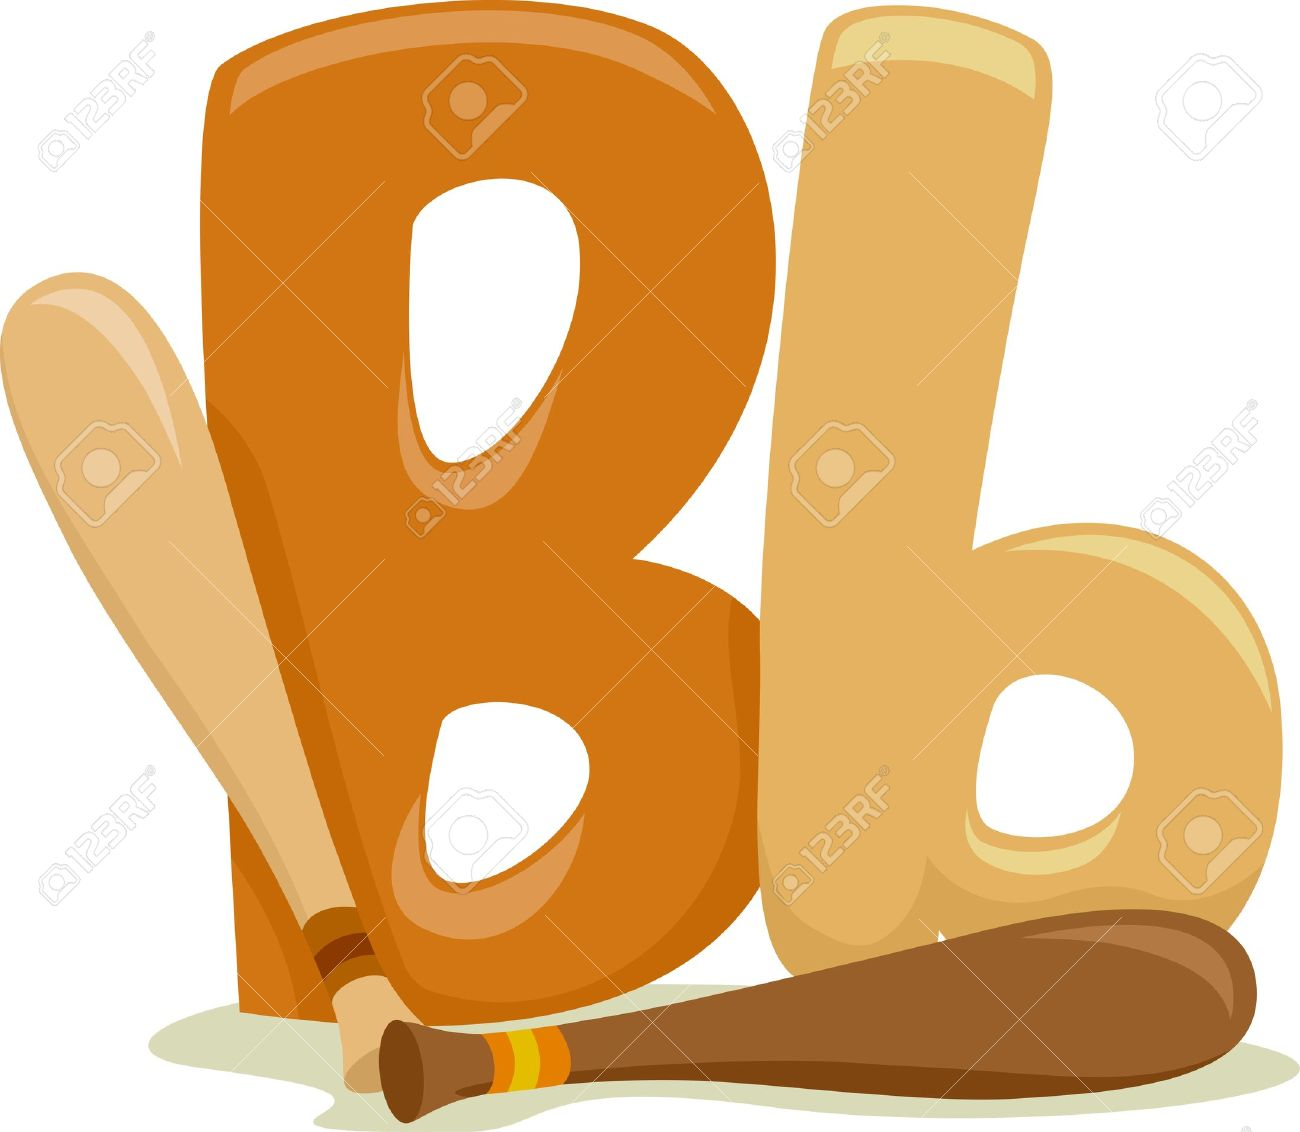 Clipart letter b b clipart freeuse download Illustration Featuring The Letter B Stock Photo, Picture And ... clipart freeuse download